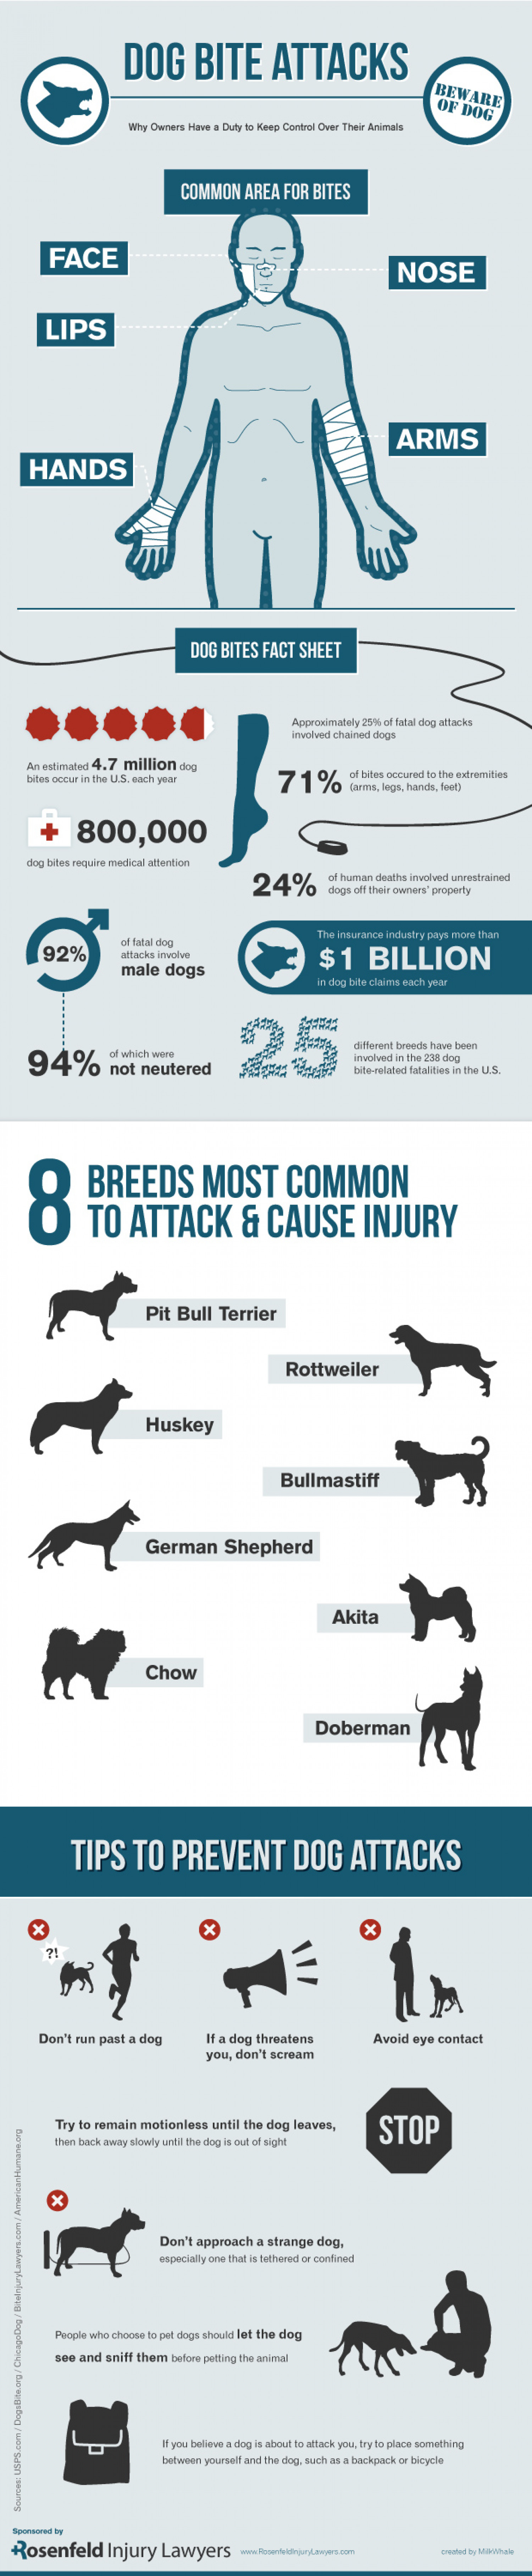 Dog Bite Attacks Infographic